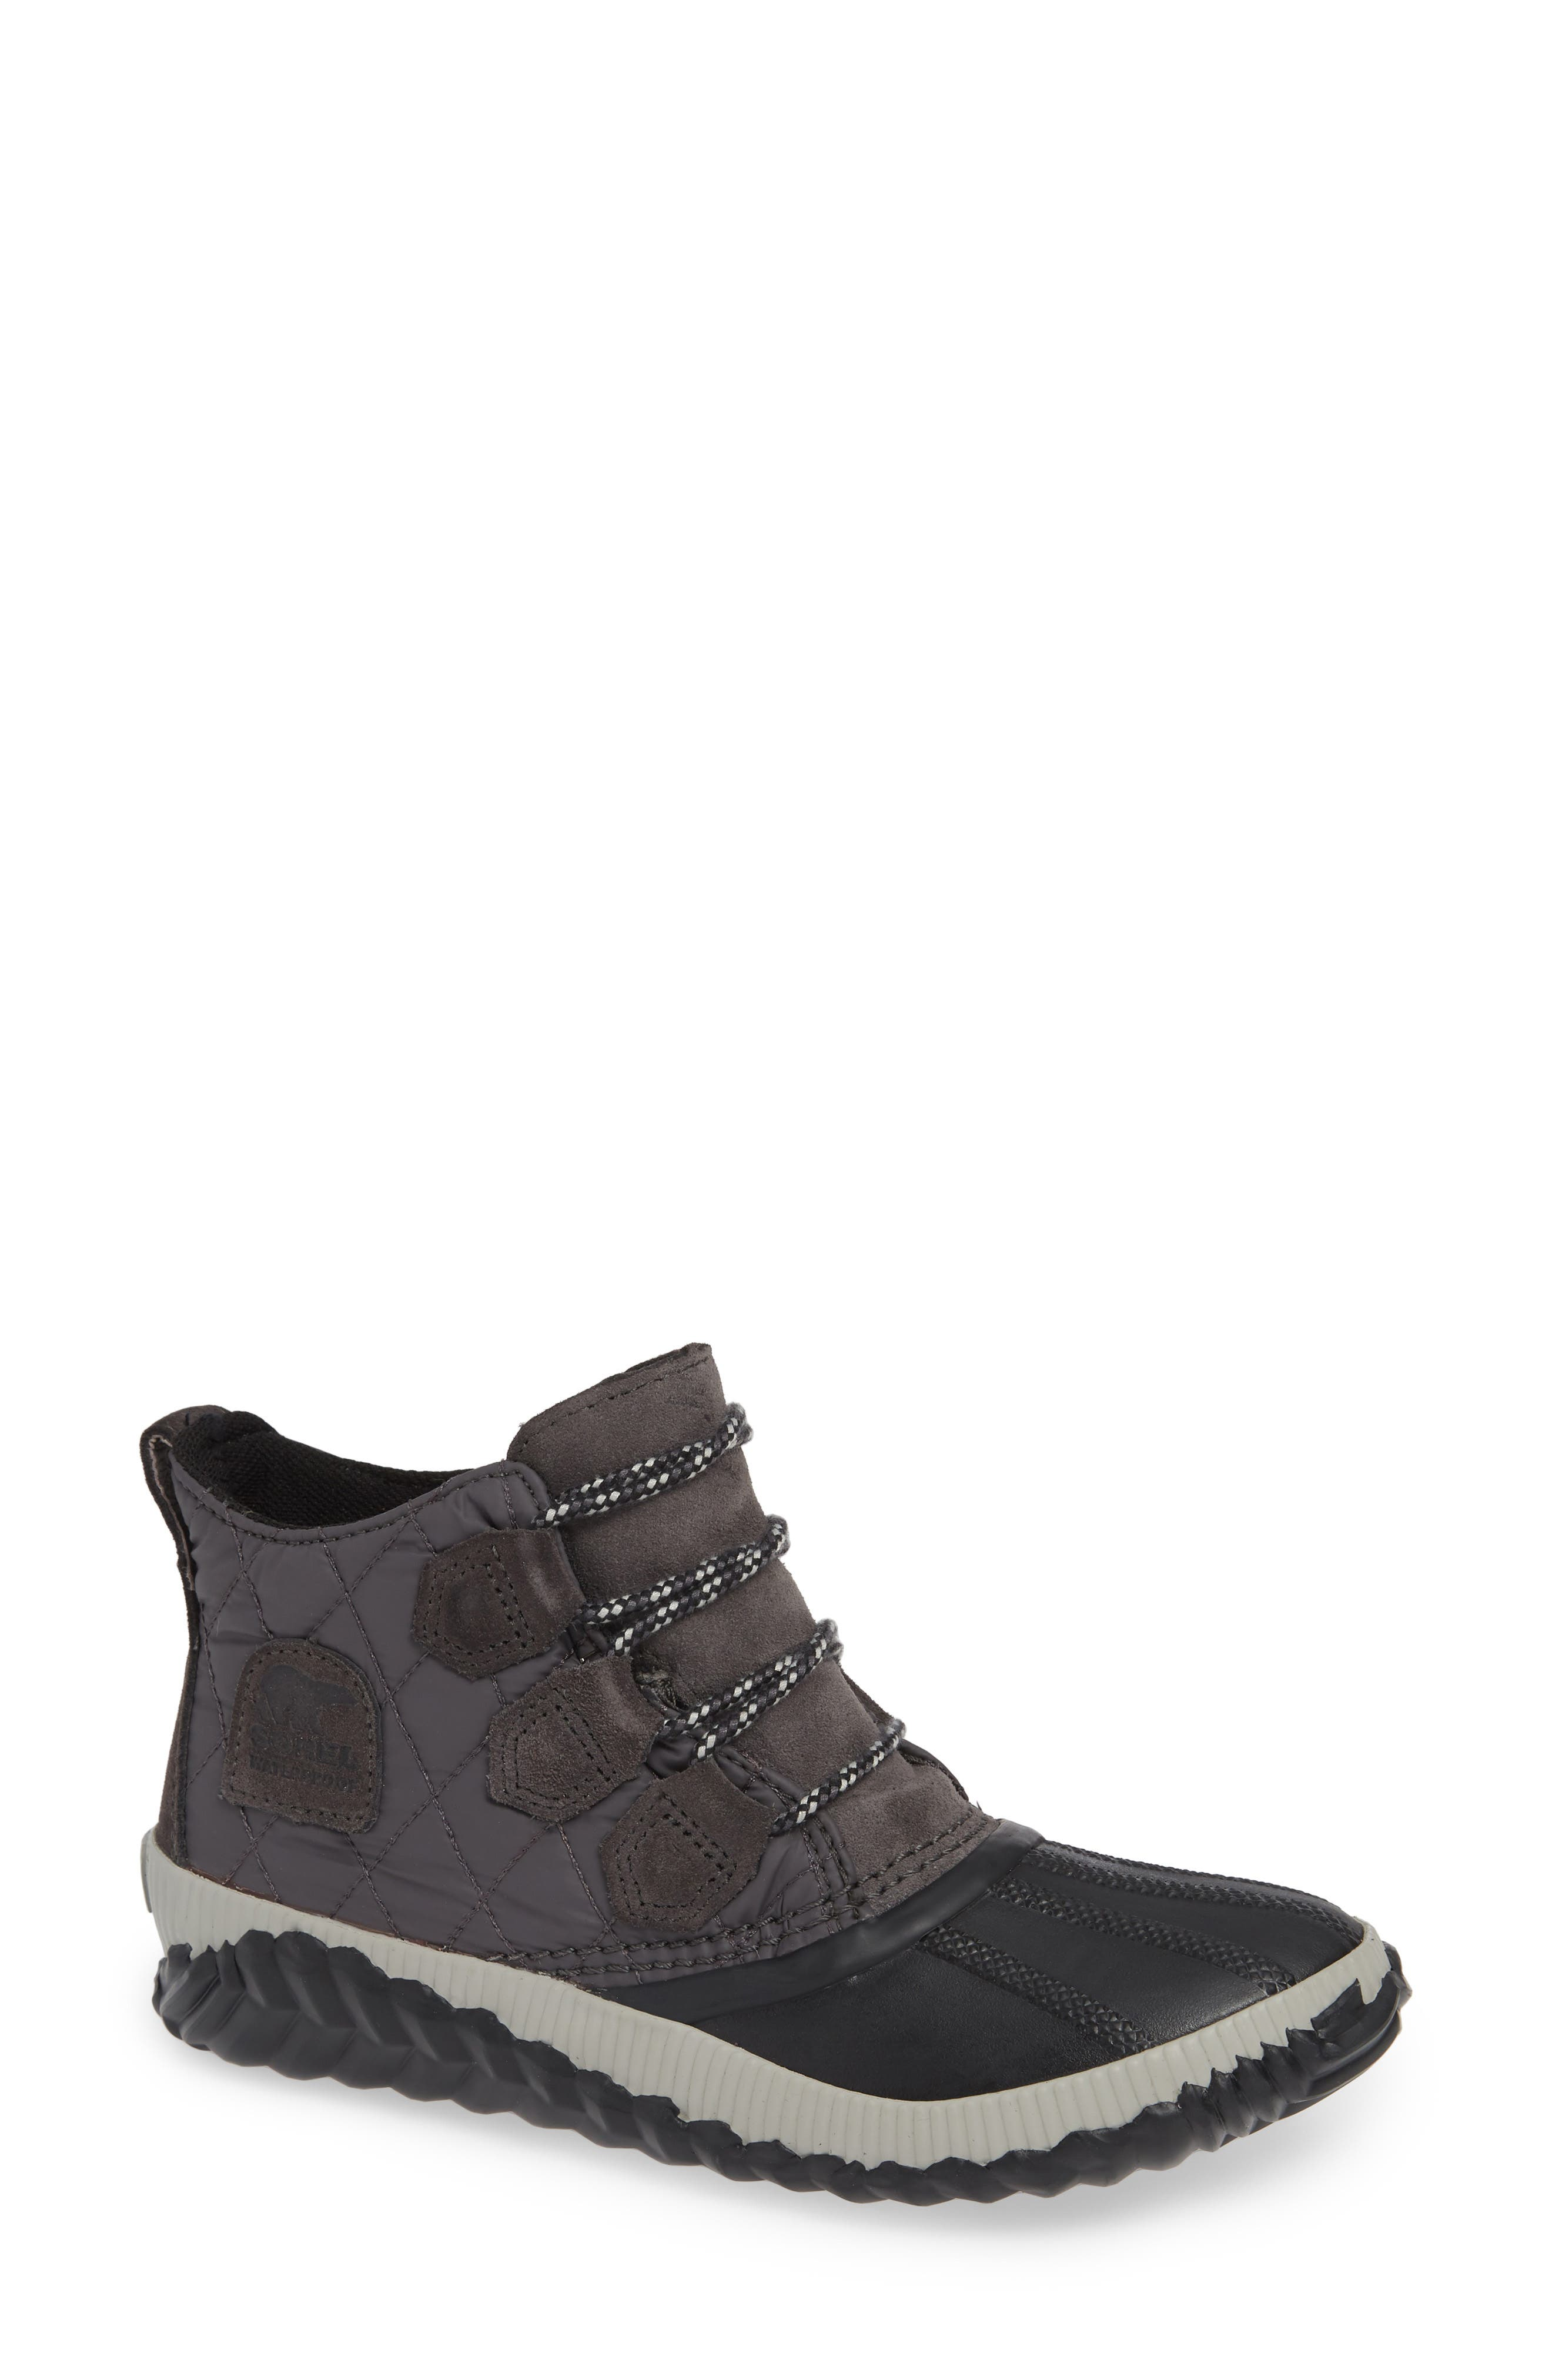 Out N About Plus Camp Waterproof Bootie,                             Main thumbnail 1, color,                             SLATE GREY/ BLACK